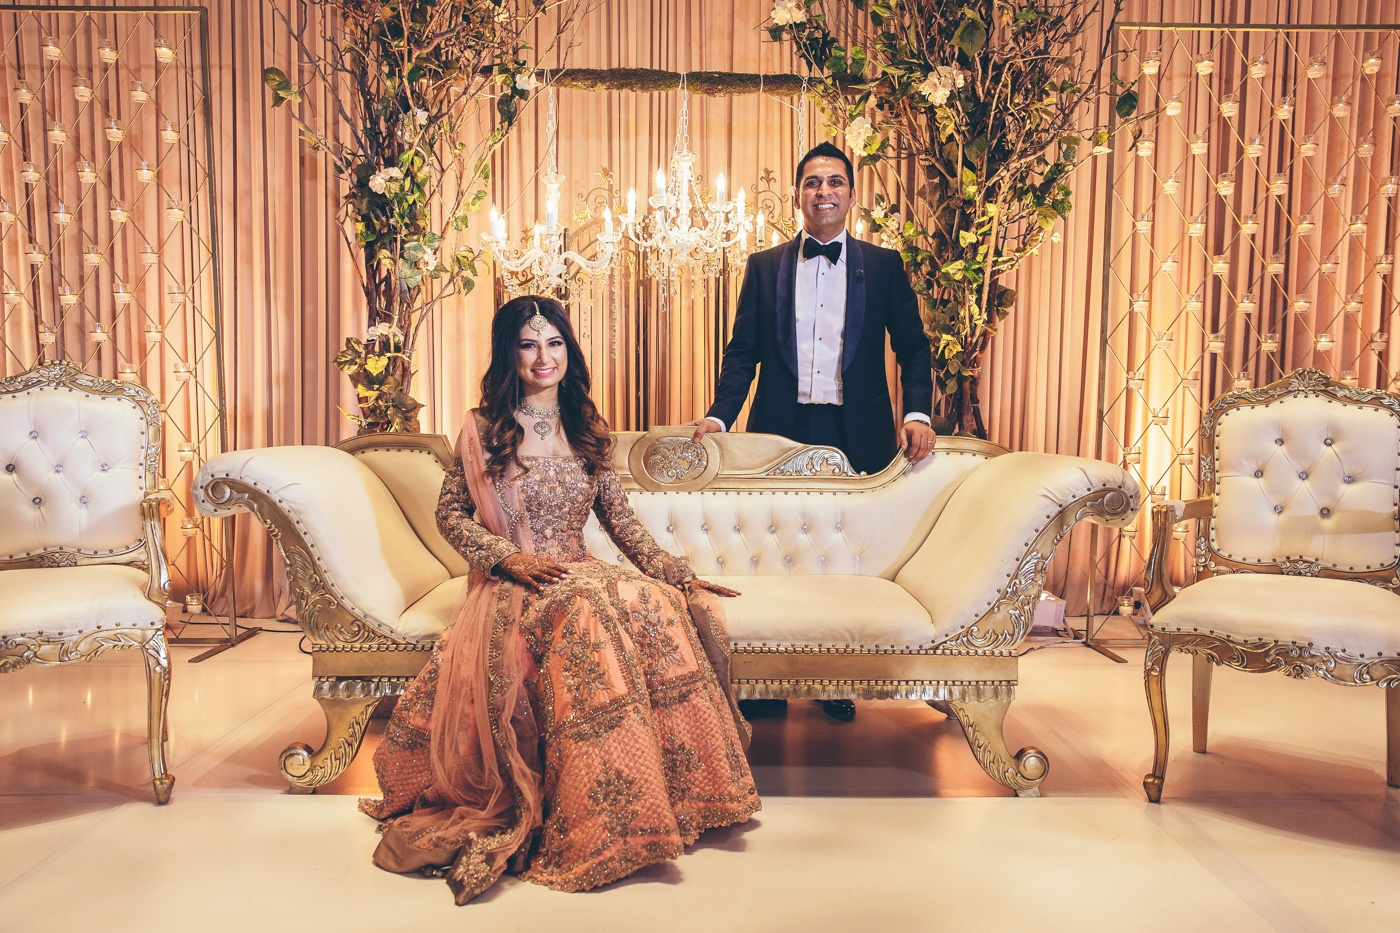 Top 13 Indian Wedding Reception Entrance Songs for Couples